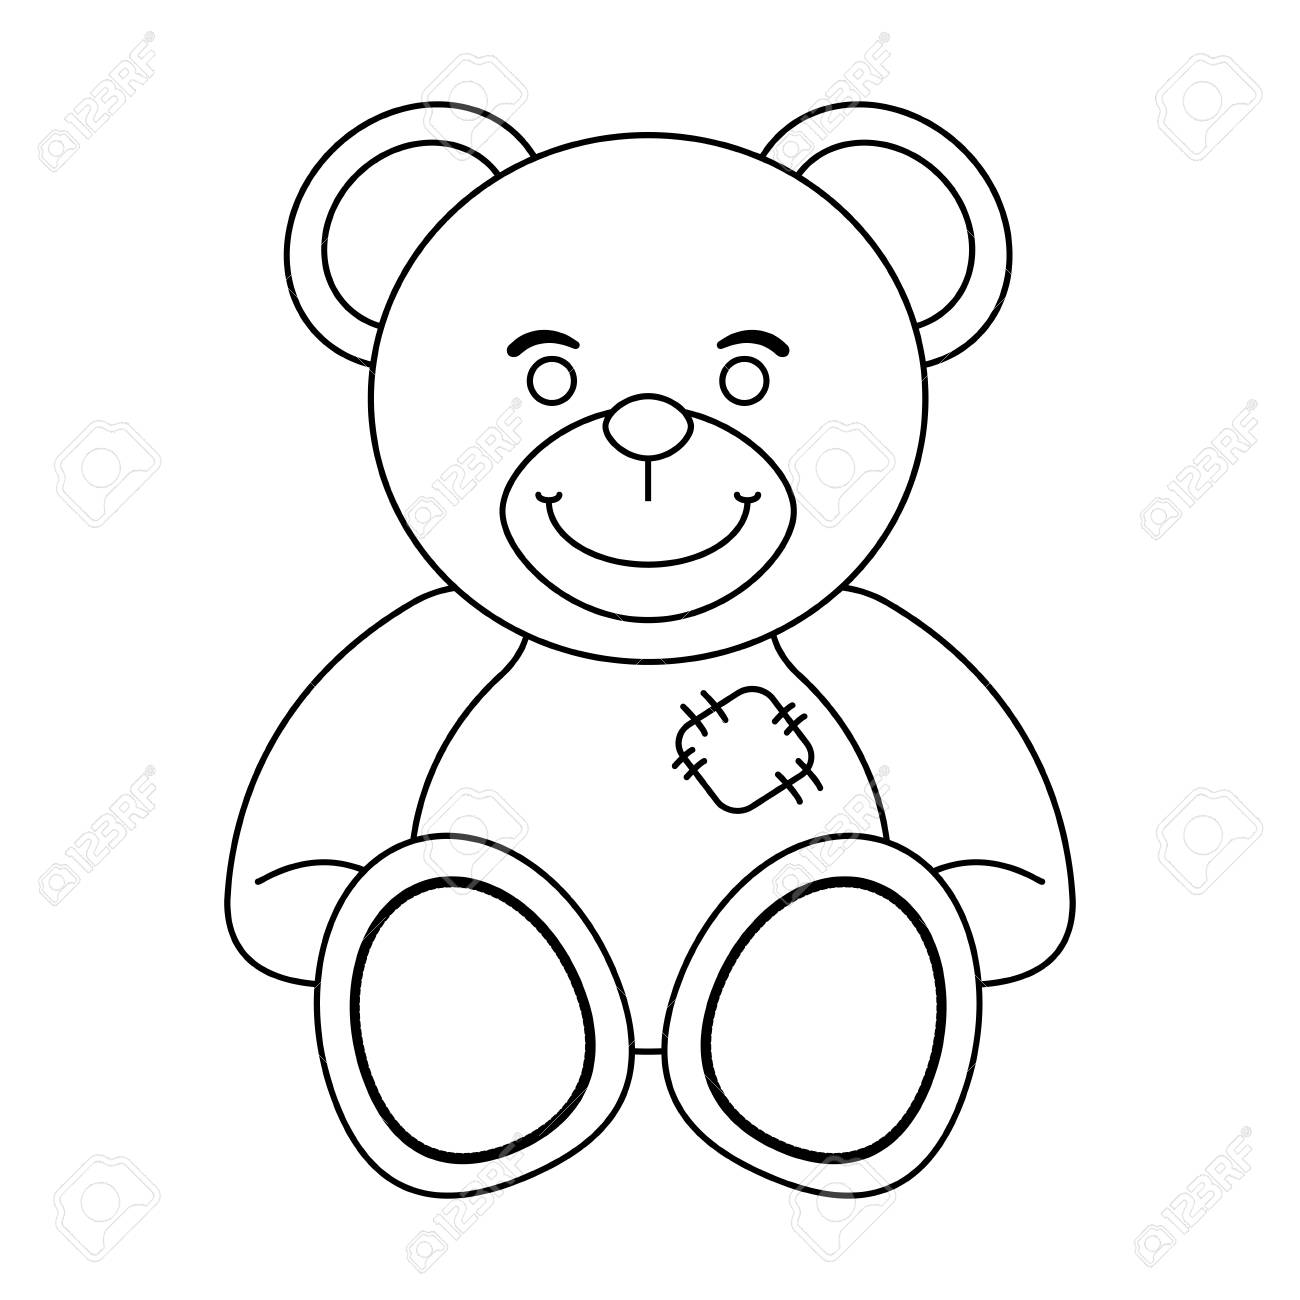 Teddy Bear Toy Isolated Vector Illustration Graphic Design Royalty